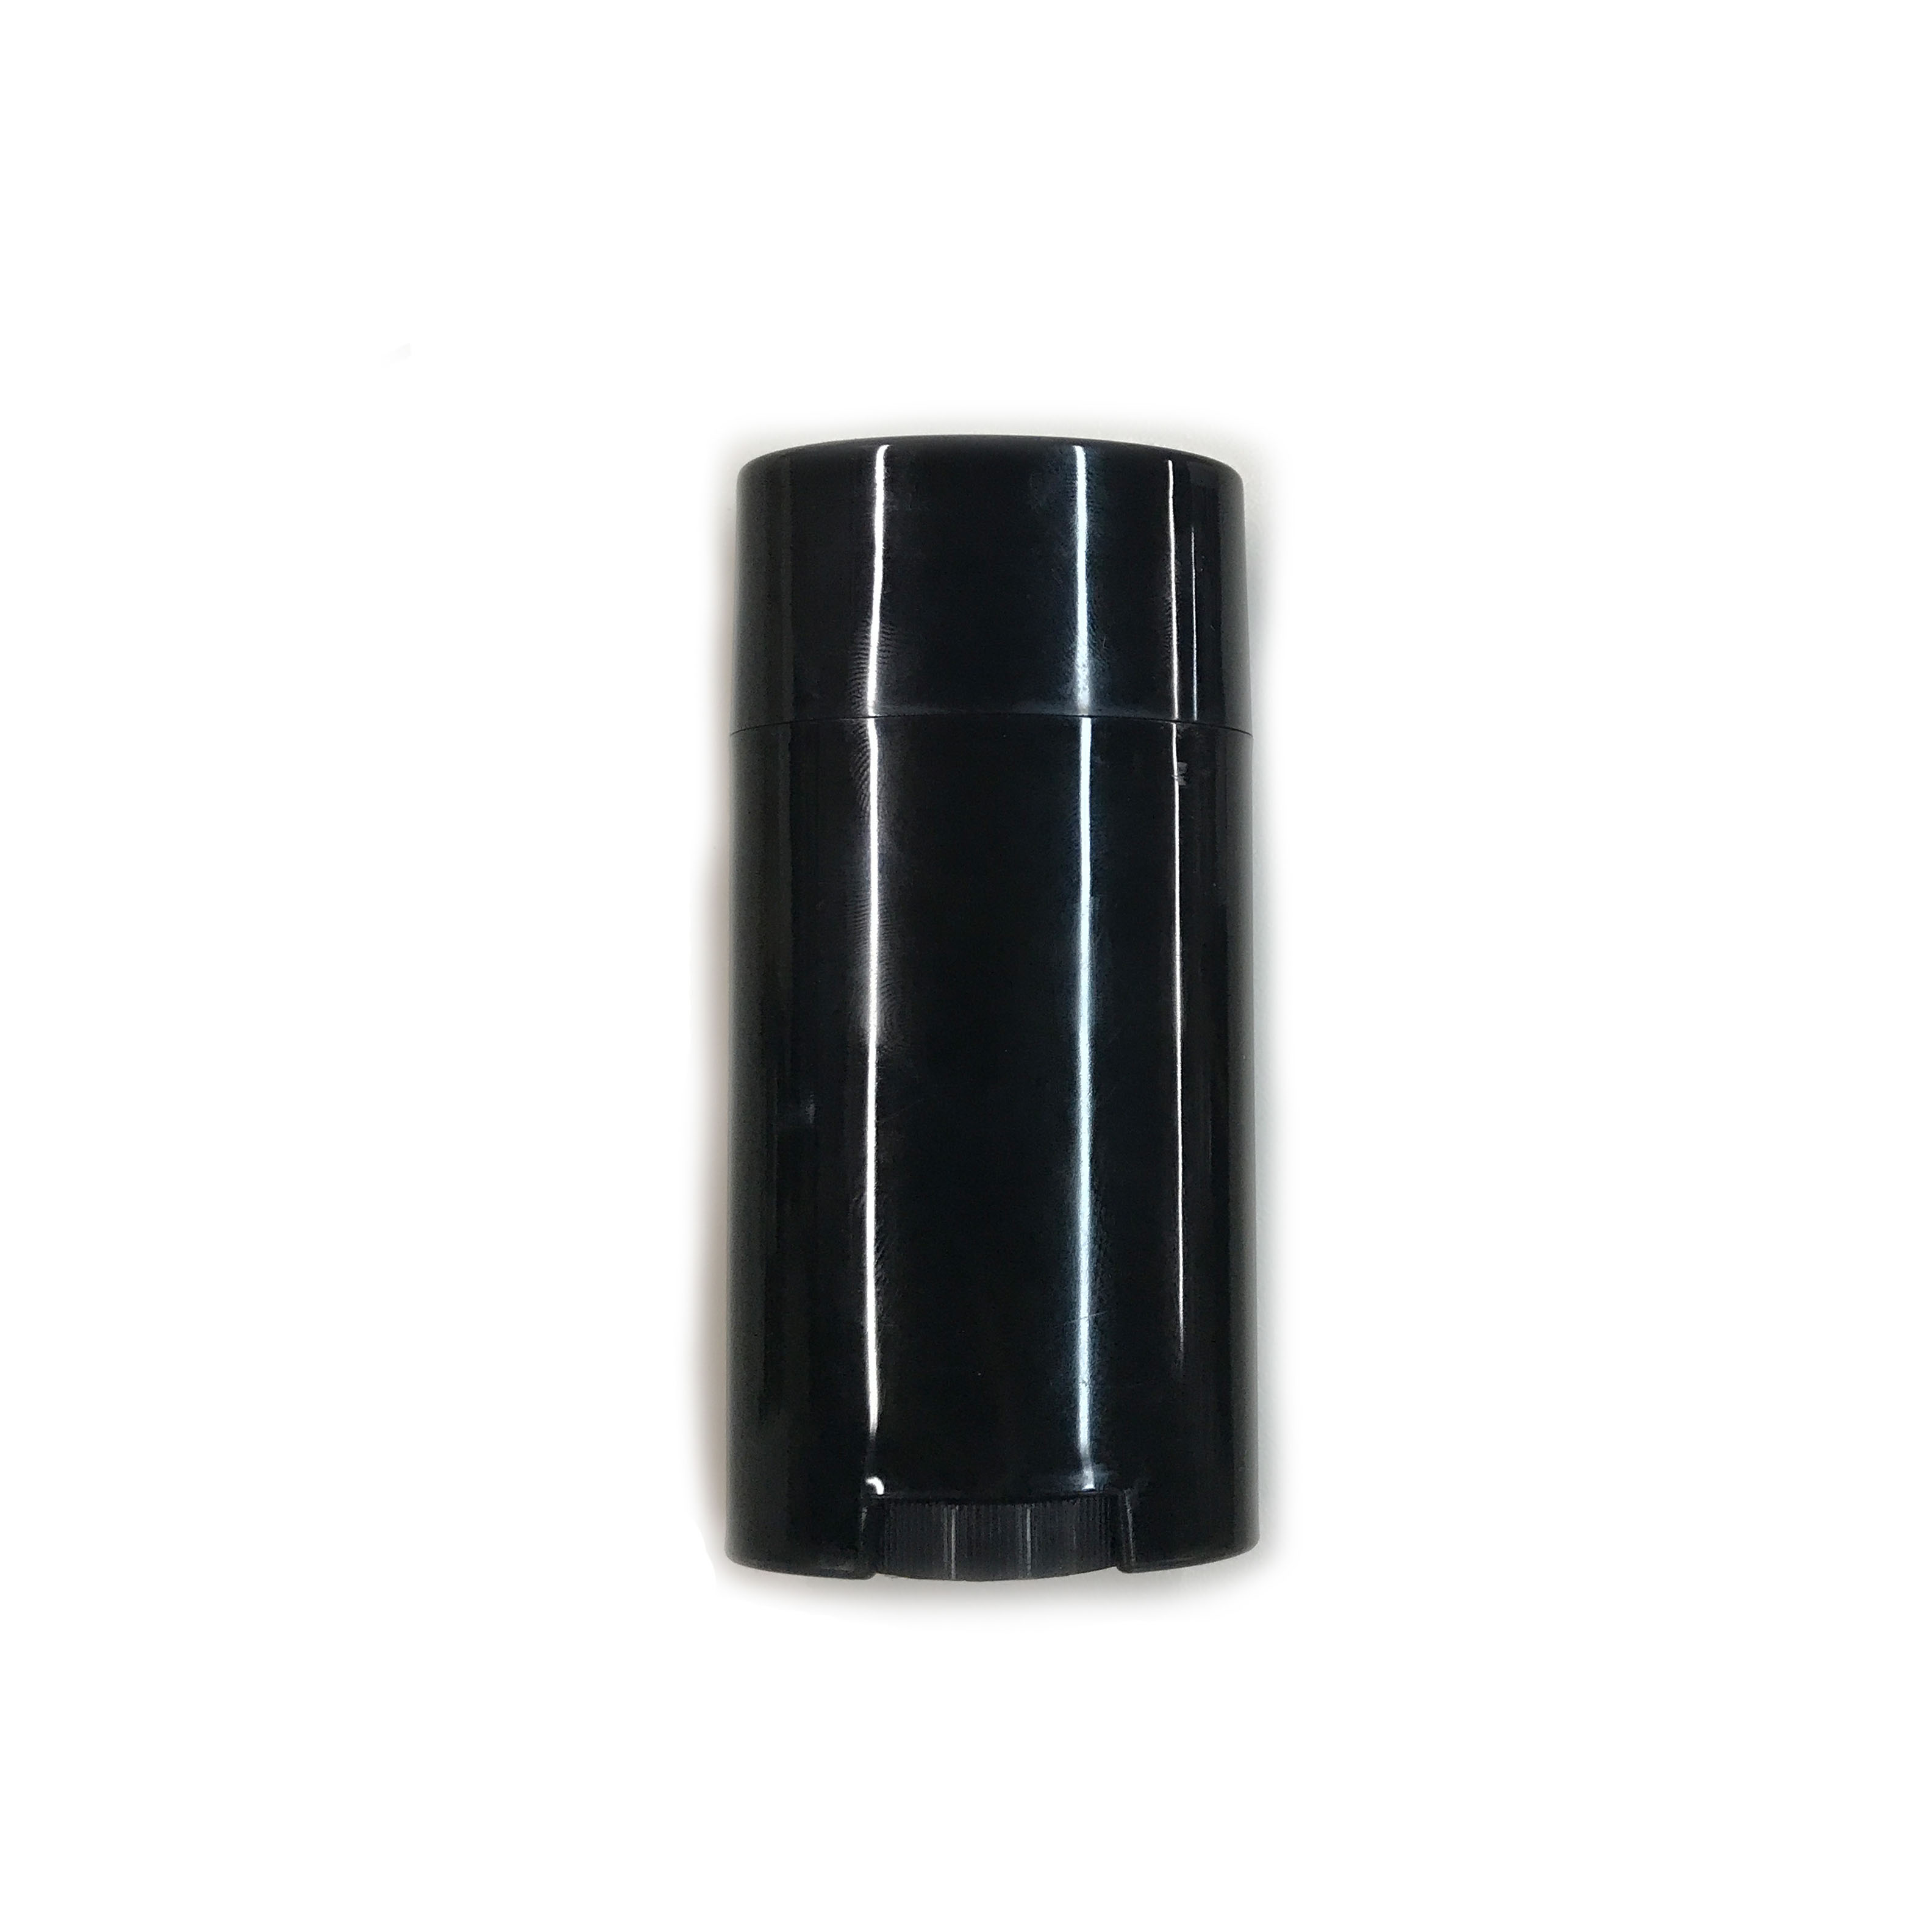 BULK QUANTITY - Empty Deodorant Container - Oval Style, Recyclable  Polypropylene Plastic, Reusable, Twist-Up, 2 5 oz, Top-Fill